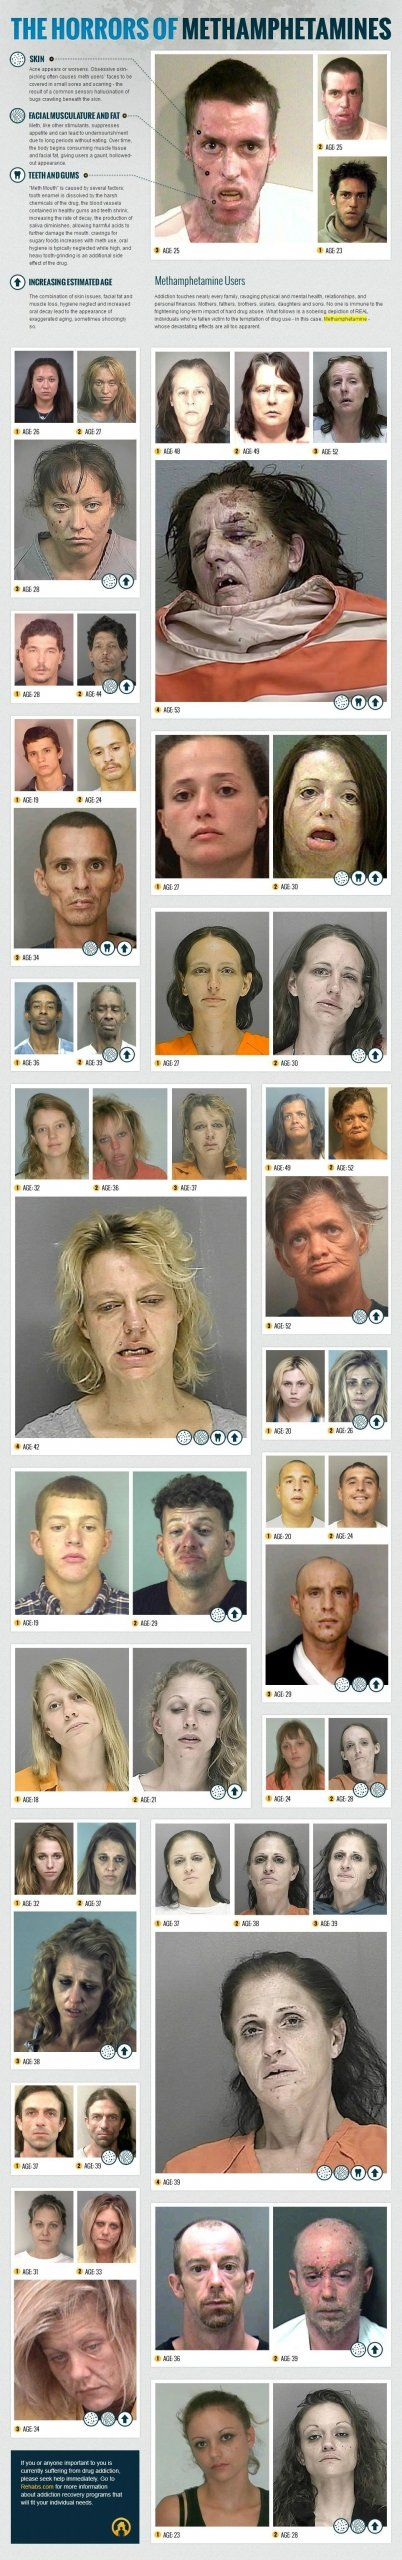 """Eight years ago, the Multnomah County Sheriff's Office launched a campaign called """"the Faces of Meth"""" to address Oregon's methamphetamine problem. The images showed the jarring effects of meth on addicts' faces through before-and-after pictures from their arrest records.  Rehabs.com recently followed suit with this infographic. Warning: these images are disturbing"""